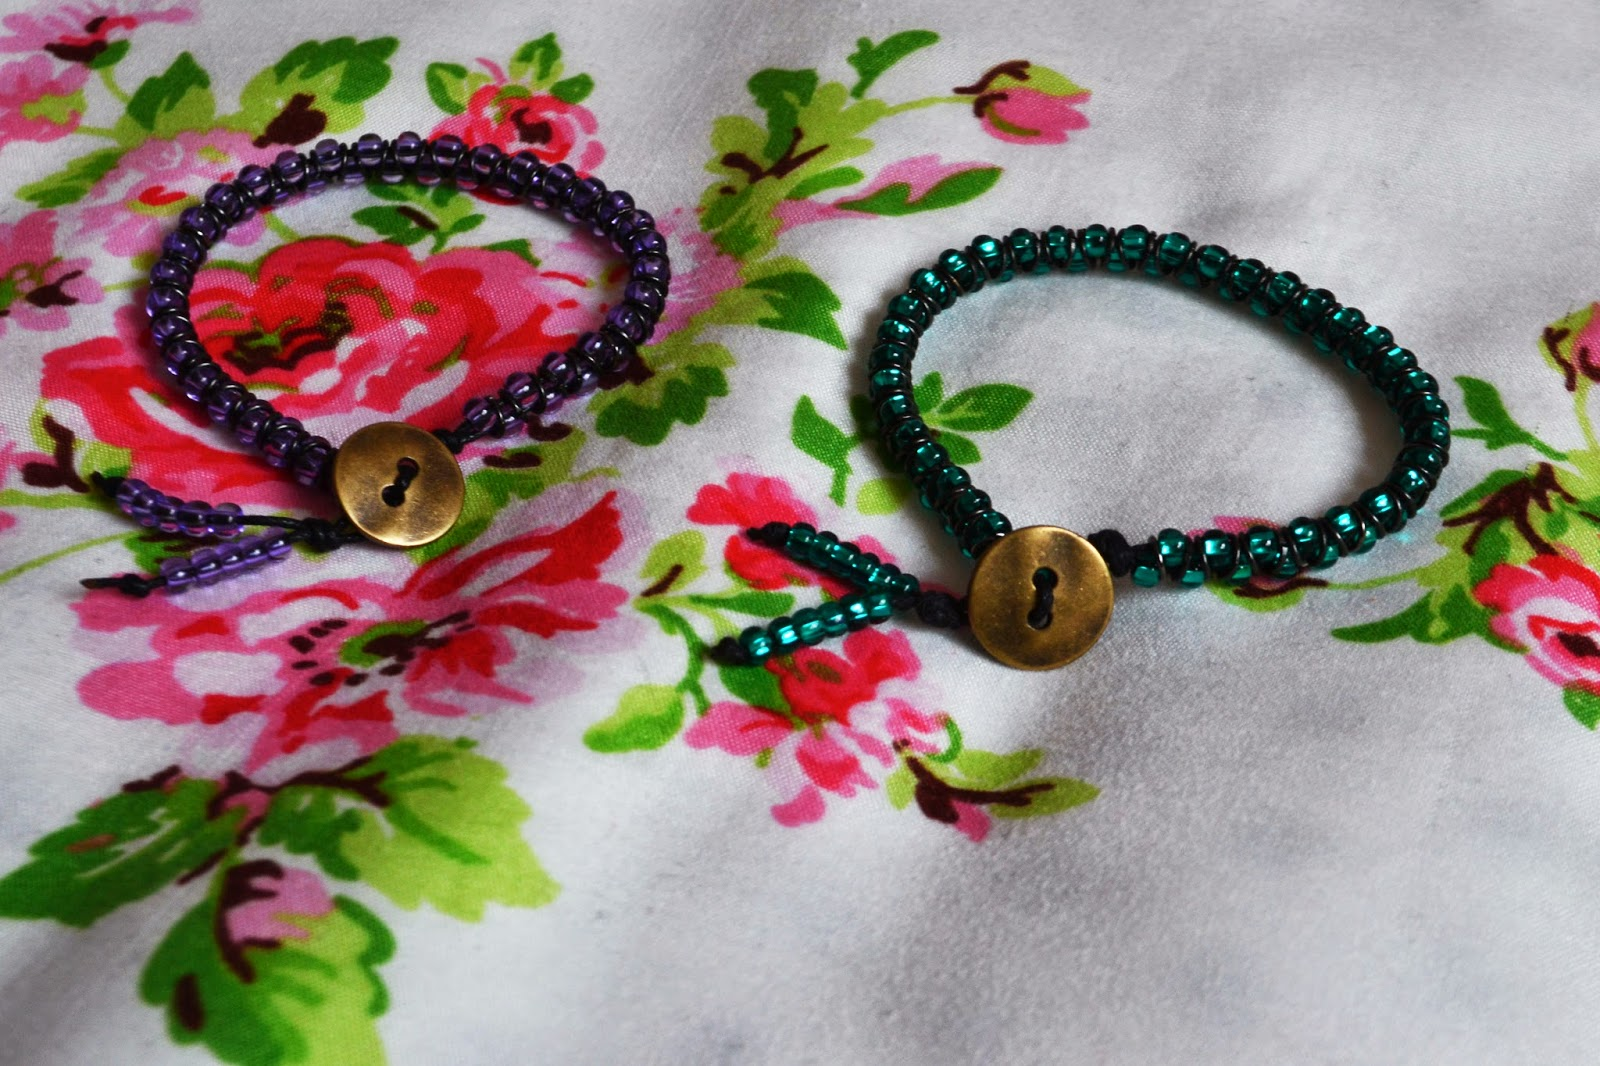 COMPLETED PURPLE AND GREEN BEAD BRACELETS